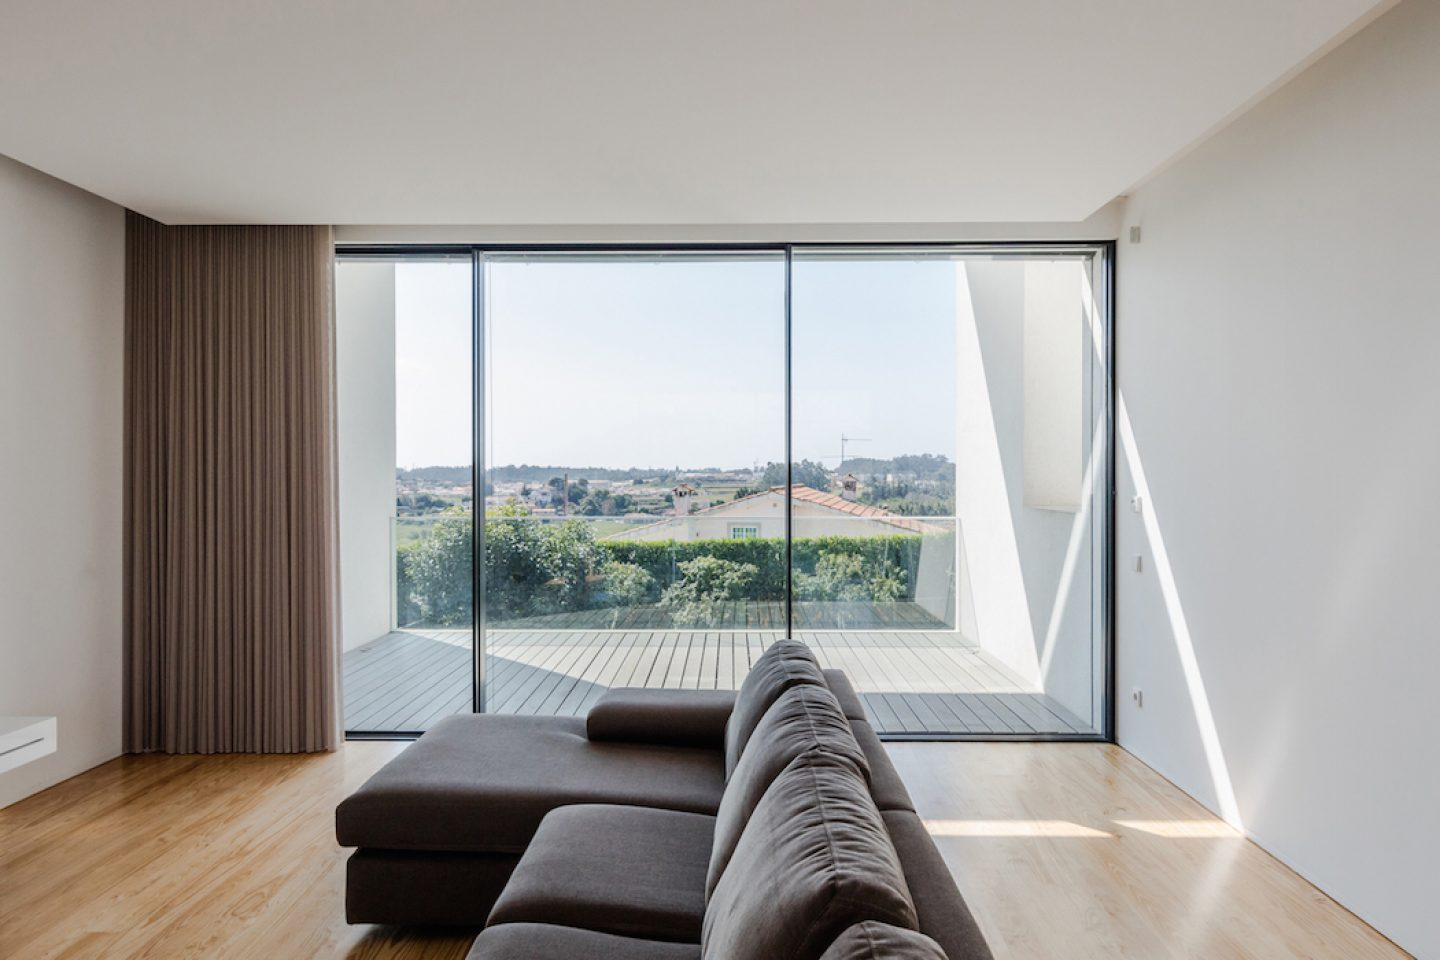 Vila do Conde House - Raulino Arquitecto (19)